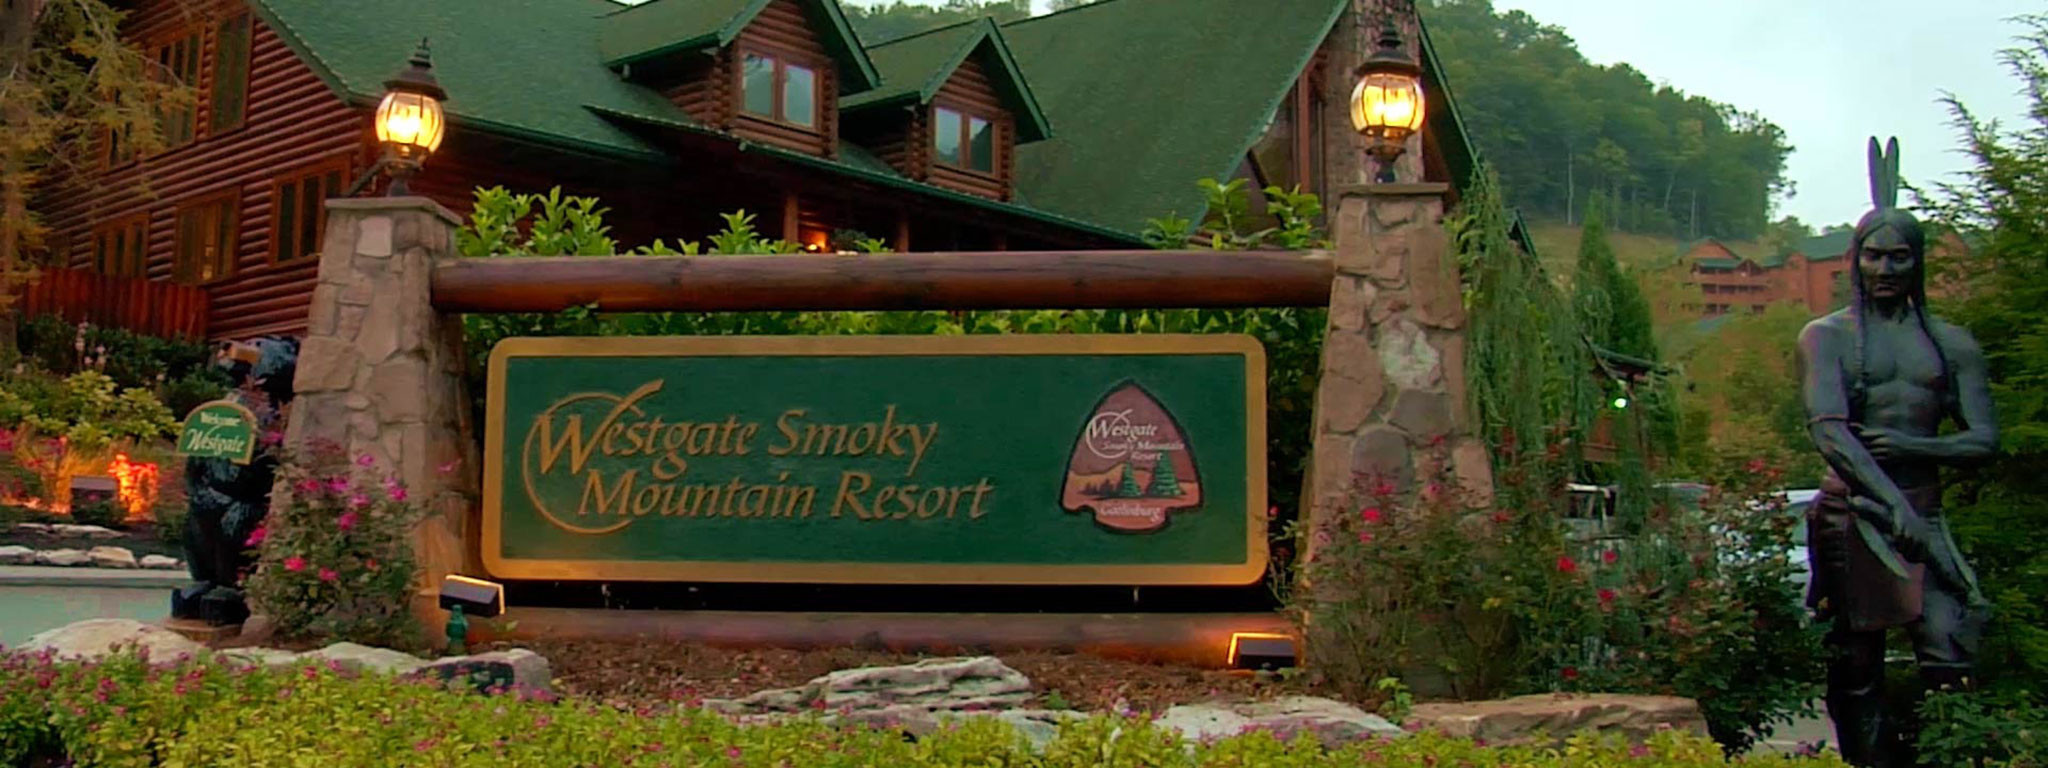 A Prime Location in the Great Smoky Mountains! Westgate Smoky Mountain Resort & Spa in Gatlinburg, Tennessee, offers guests all the comforts of a fully furnished home, all within minutes of Great Smoky Mountains National Park – the most-visited national park in the United States – as well as Dollywood theme park and bustling downtown Gatlinburg.